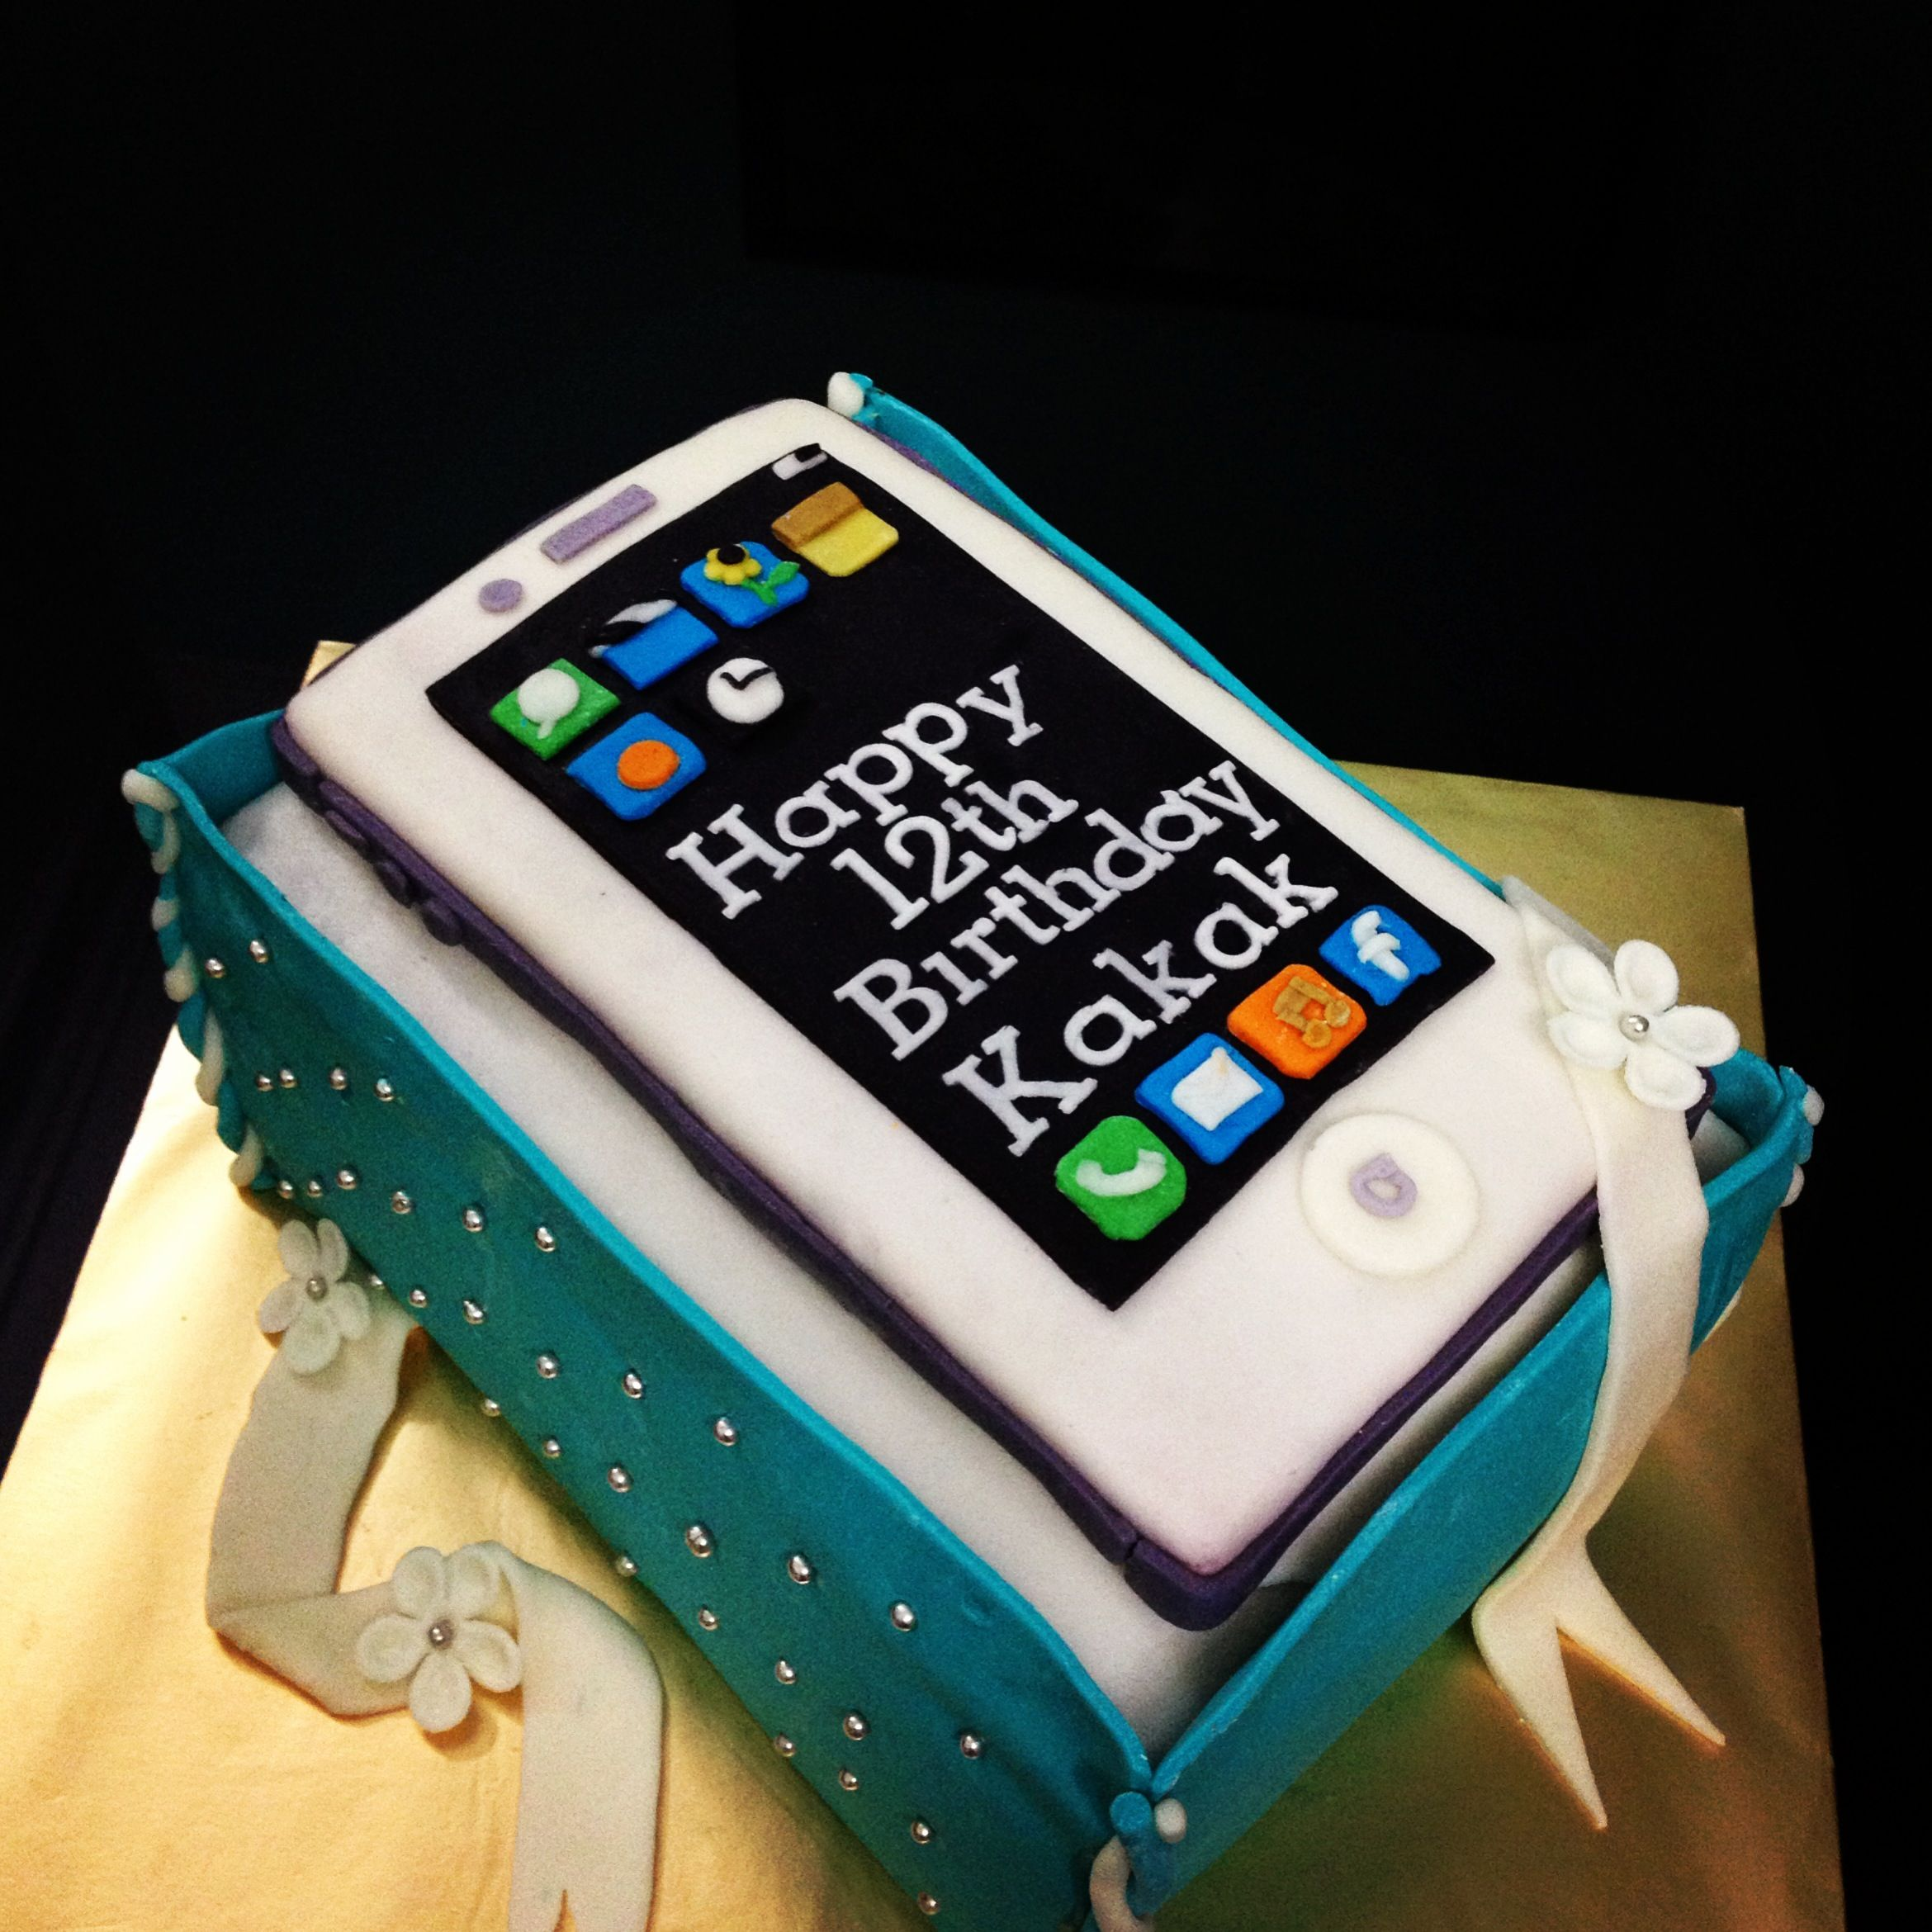 Iphone 5 cake Cake Chapter Pinterest Cake and Birthday cakes